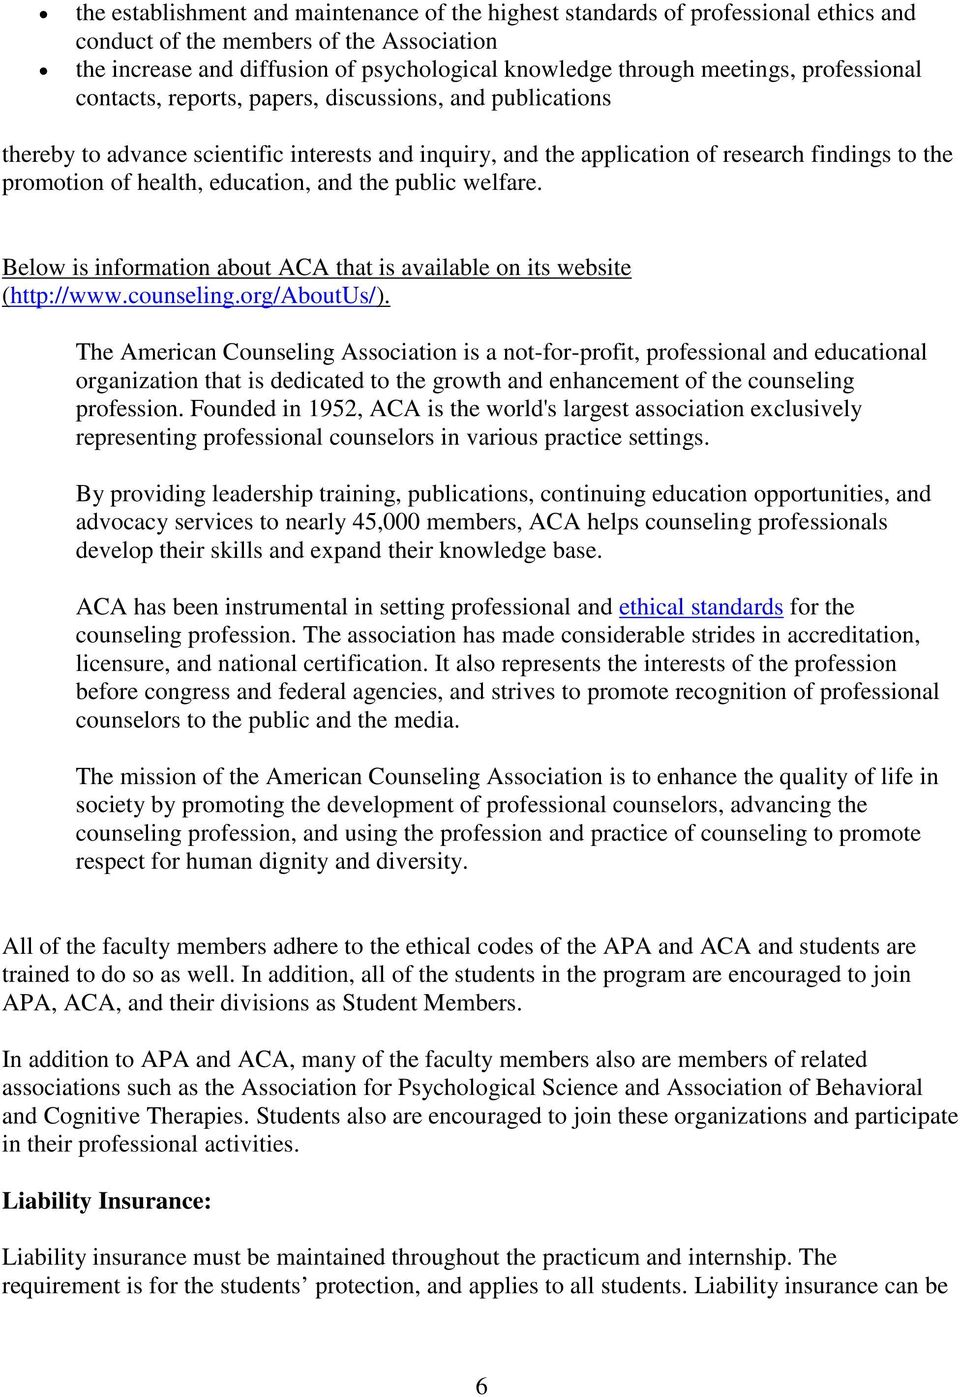 education, and the public welfare. Below is information about ACA that is available on its website (http://www.counseling.org/aboutus/).